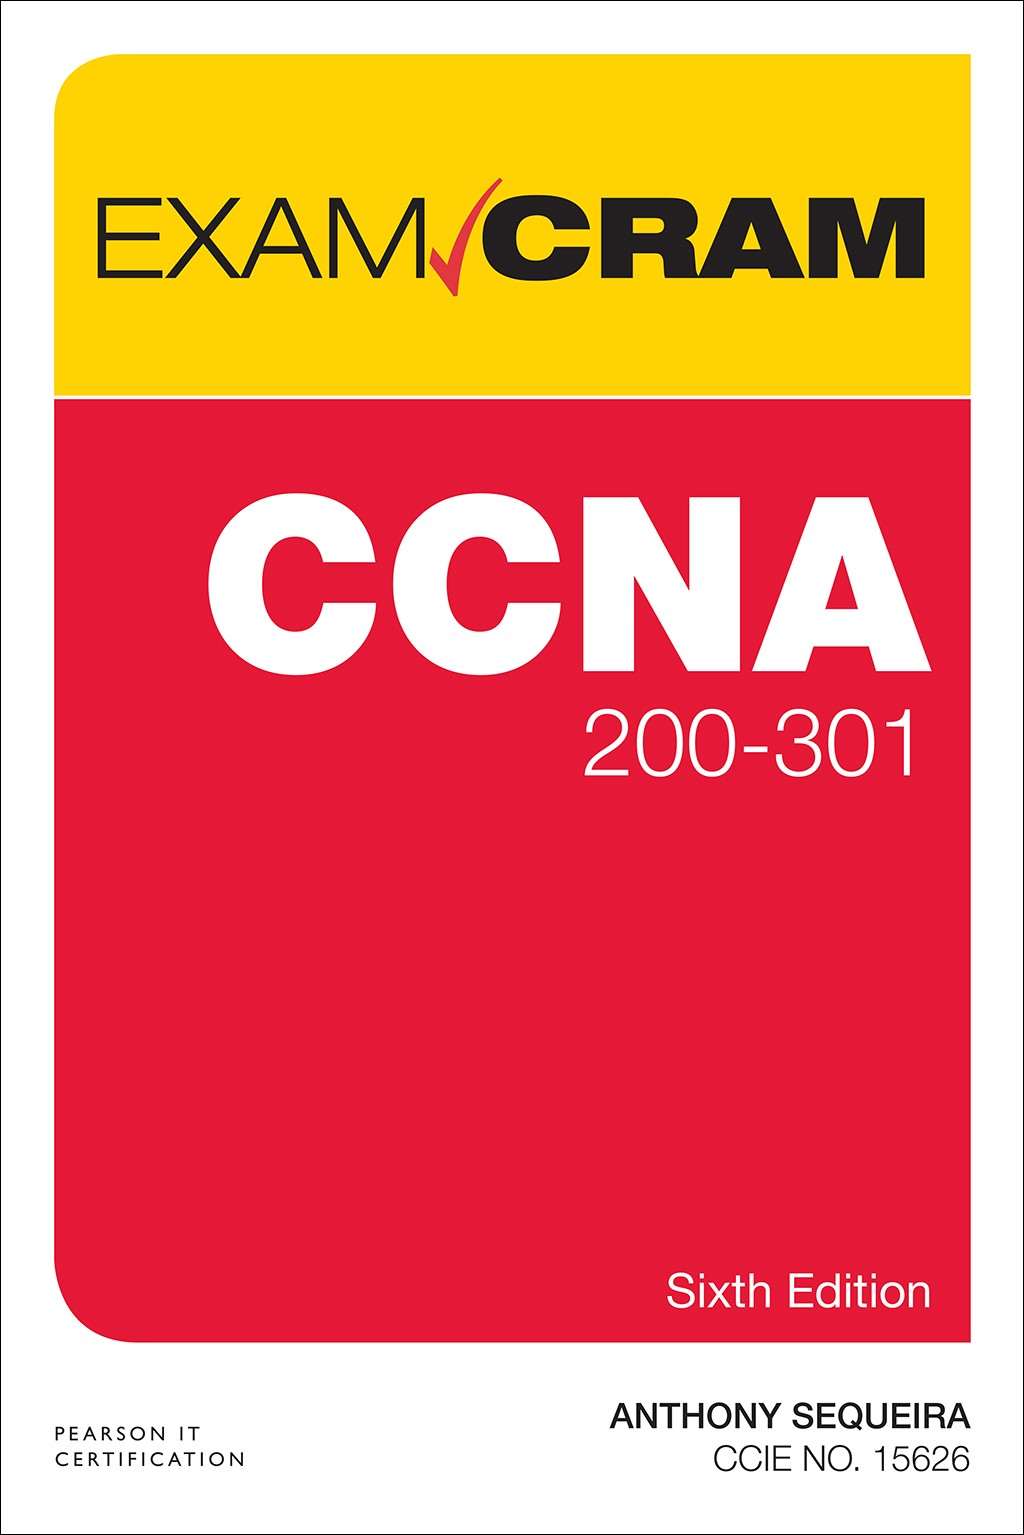 CCNA 200-301 Exam Cram, 6th Edition